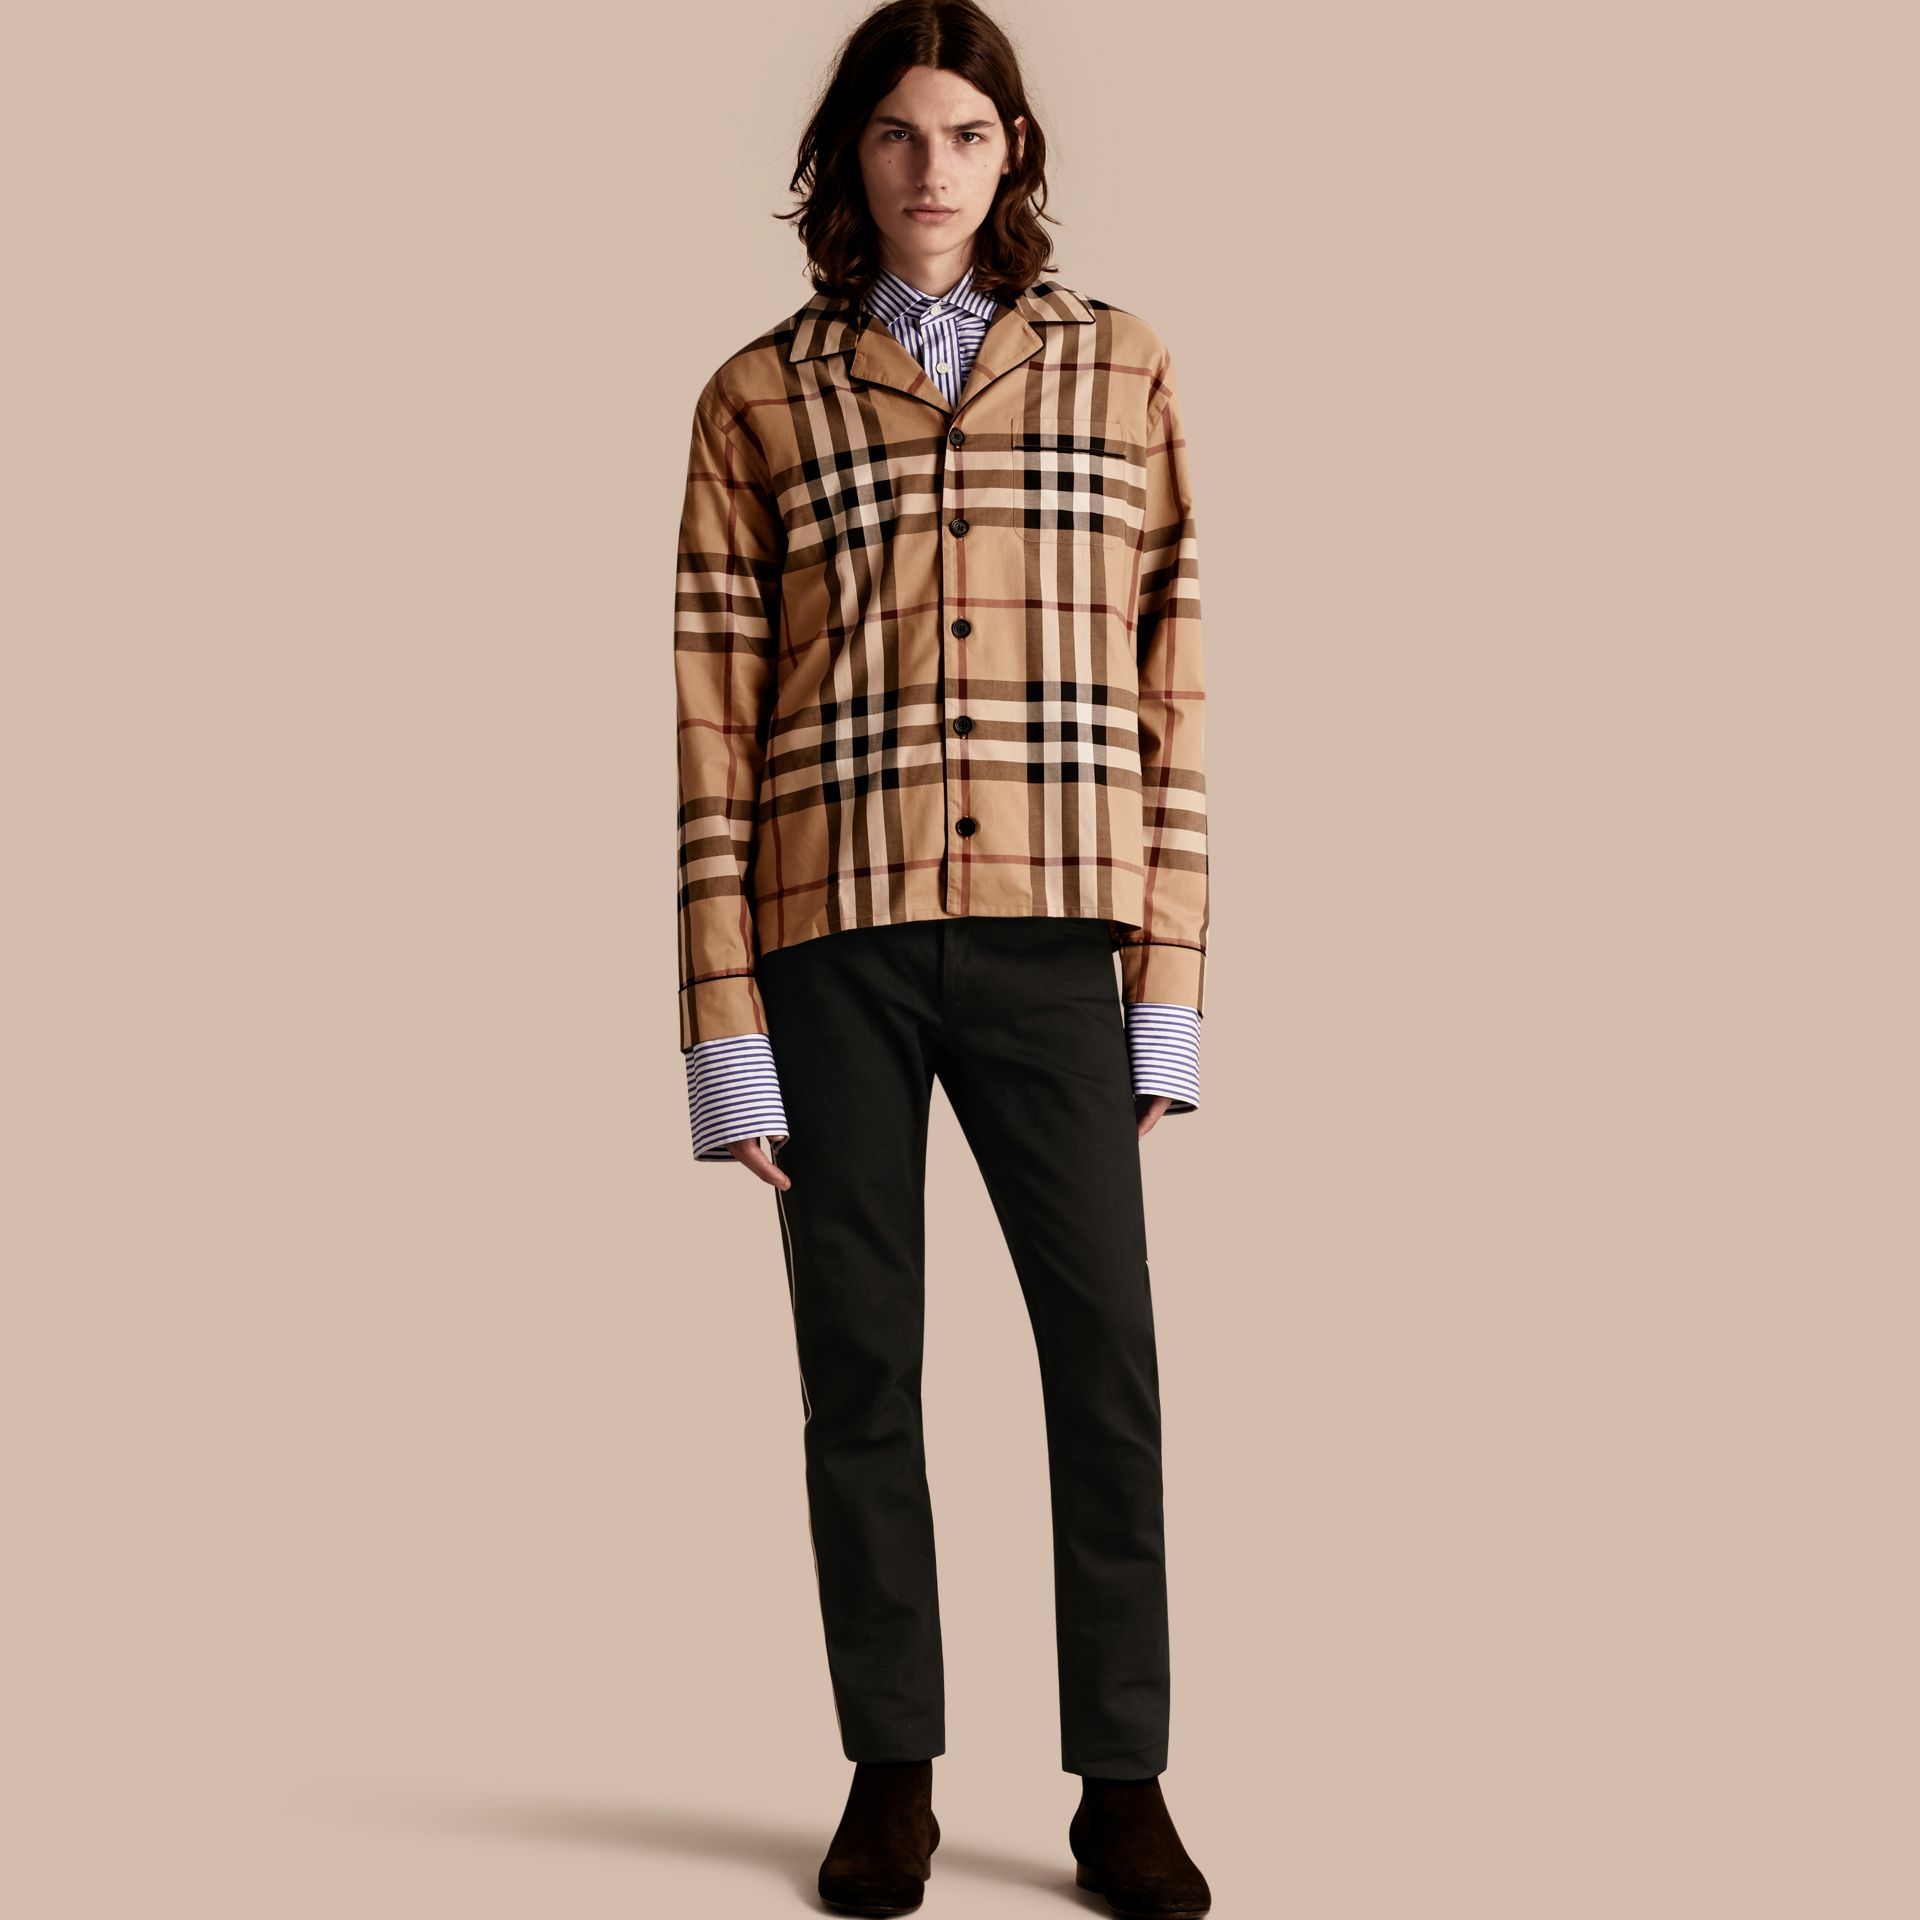 Camel Check Cotton Pyjama-style Shirt Camel - gallery image 1